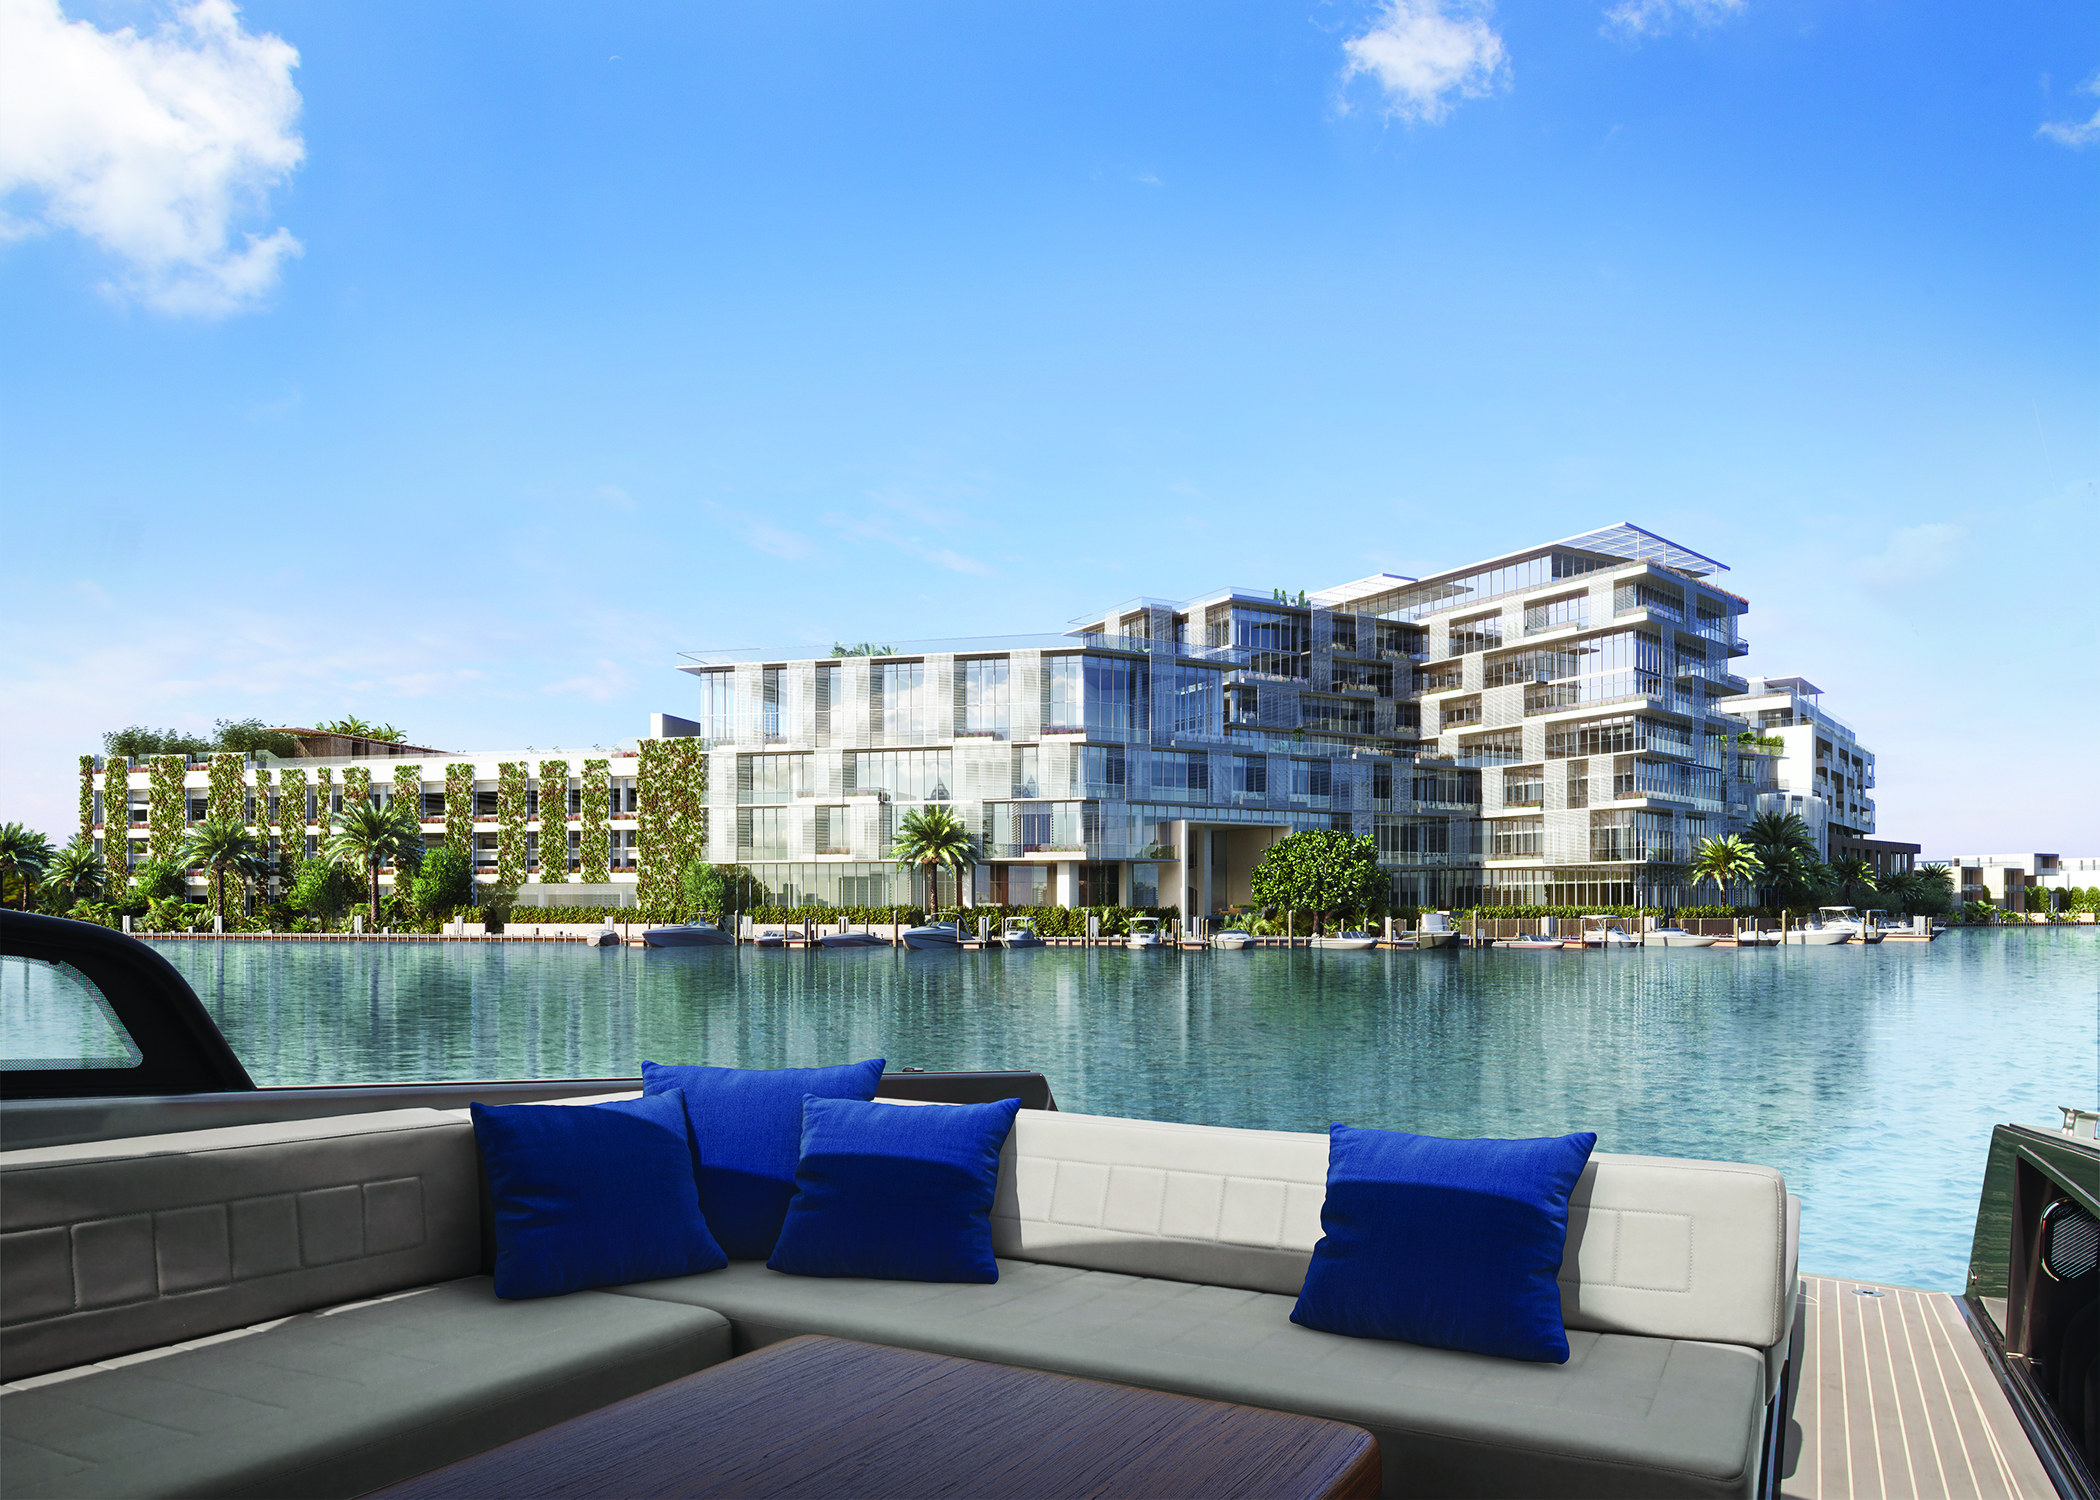 The Ritz-Carlton Residences Miami Beach is a private property with 111 condominium homes and 15 single-family villas